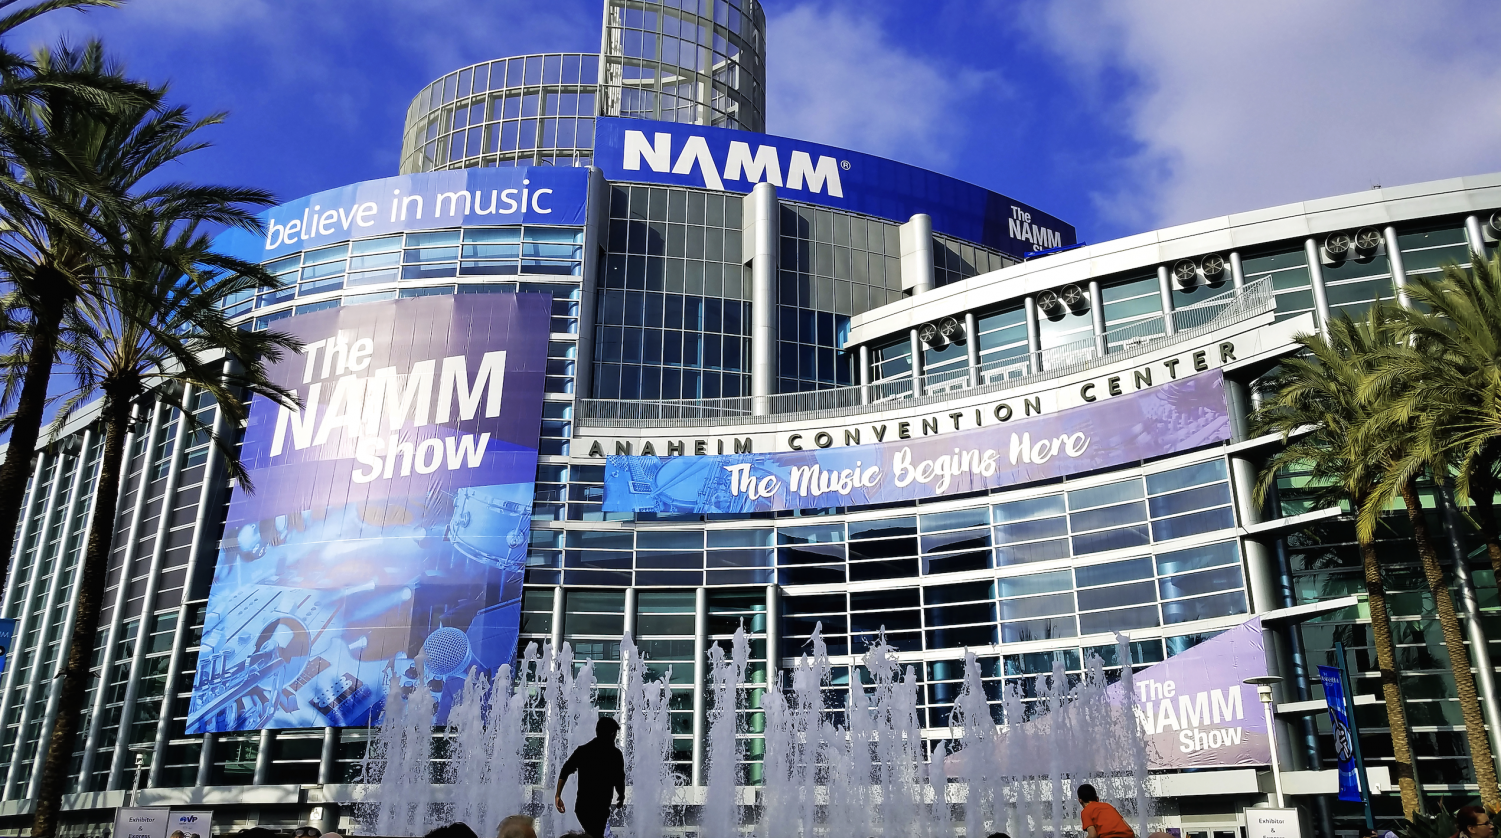 The Anaheim Convention Center where The NAMM Show takes place every year. Though the event is a trade-show, the organization also aids in helping the future of music by funding charities and educational programs.